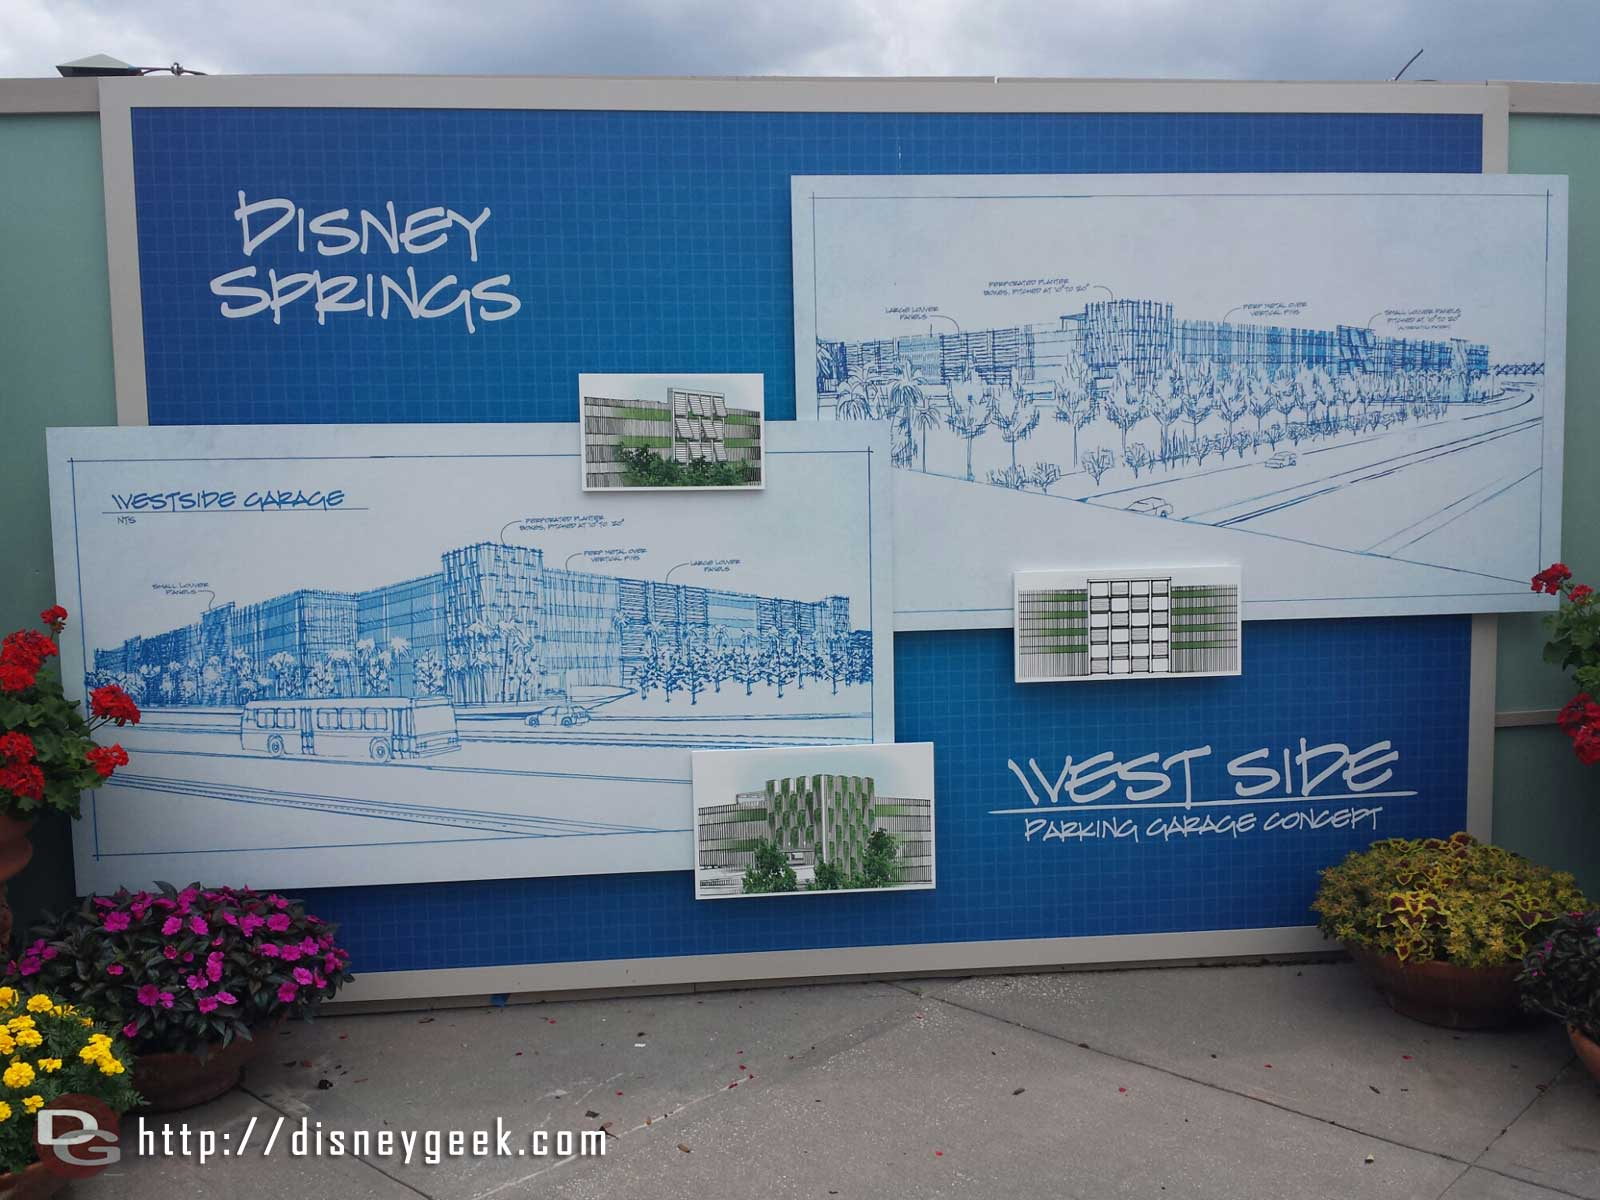 Concept art for the Disney Springs West Side parking structure